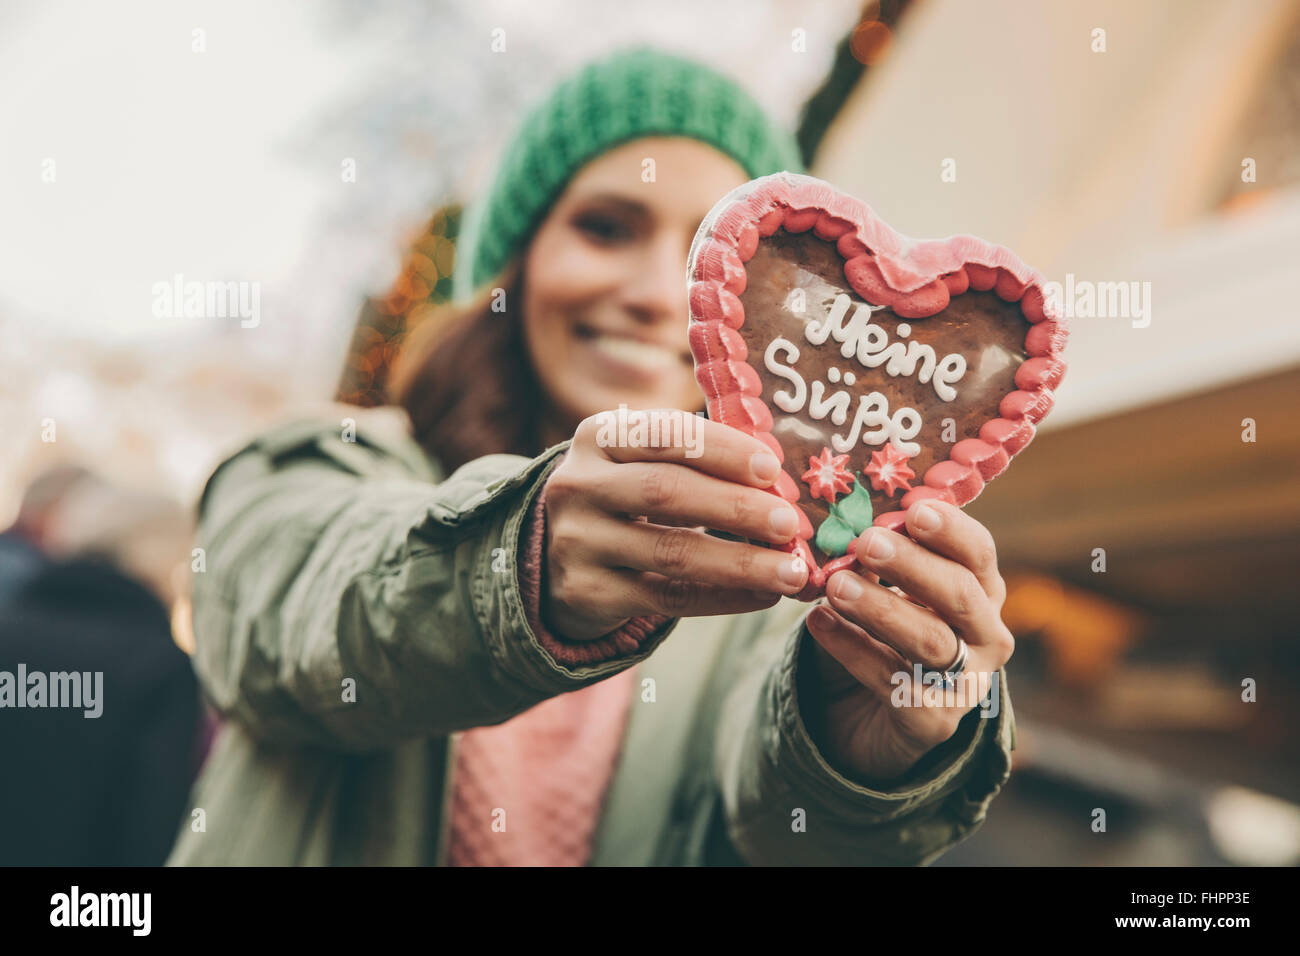 Woman holding up a gingerbread heart on the Christmas Market - Stock Image